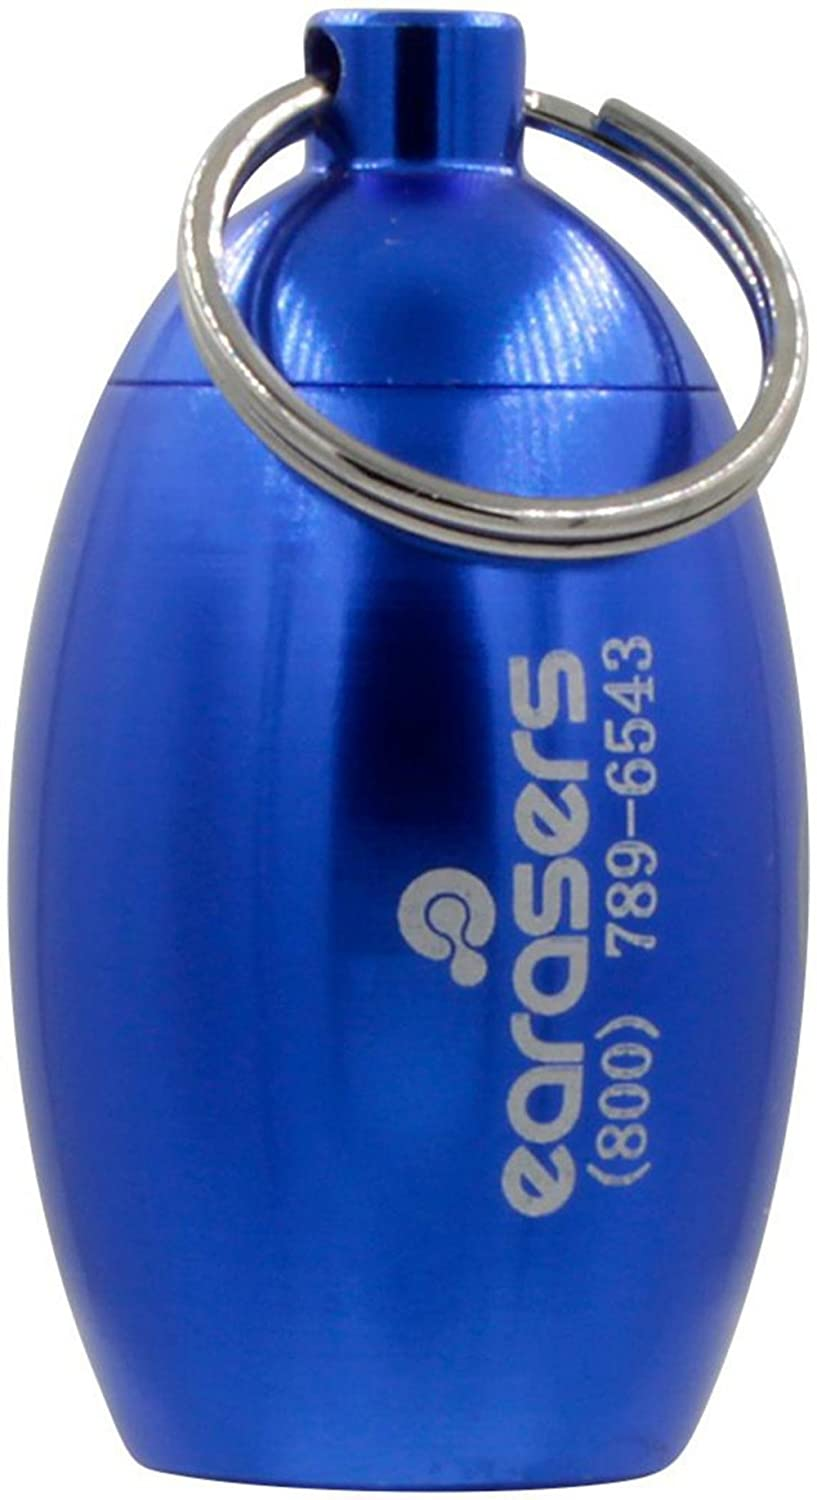 Earasers Ear Plug Carrying Case Blue